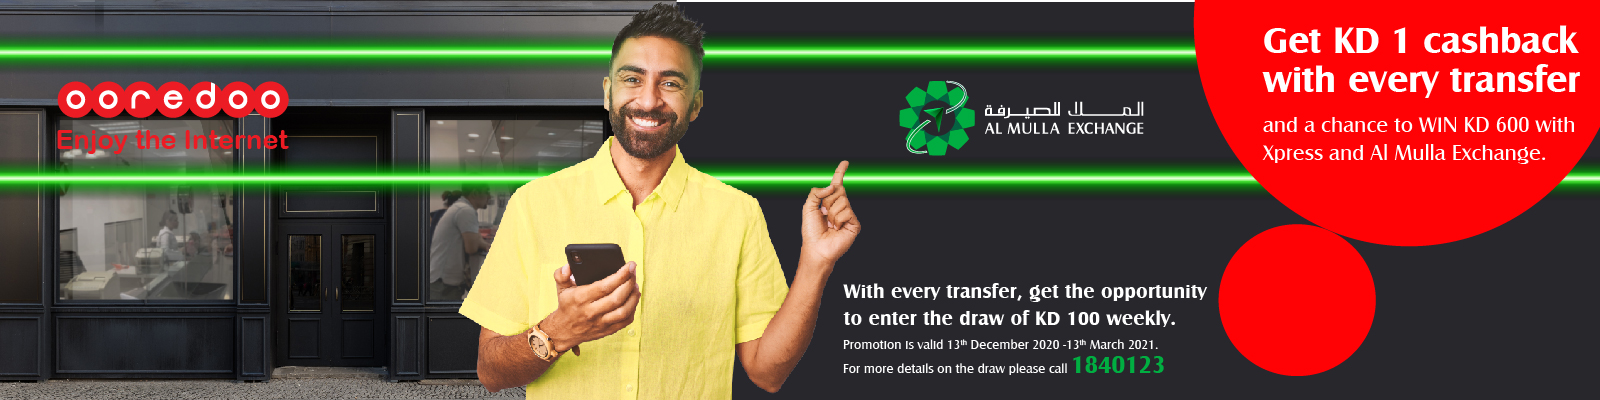 Save with Al Mulla Exchange and Ooredoo !! Get Your Commission Back and also enter into a weekly draw. ⏳